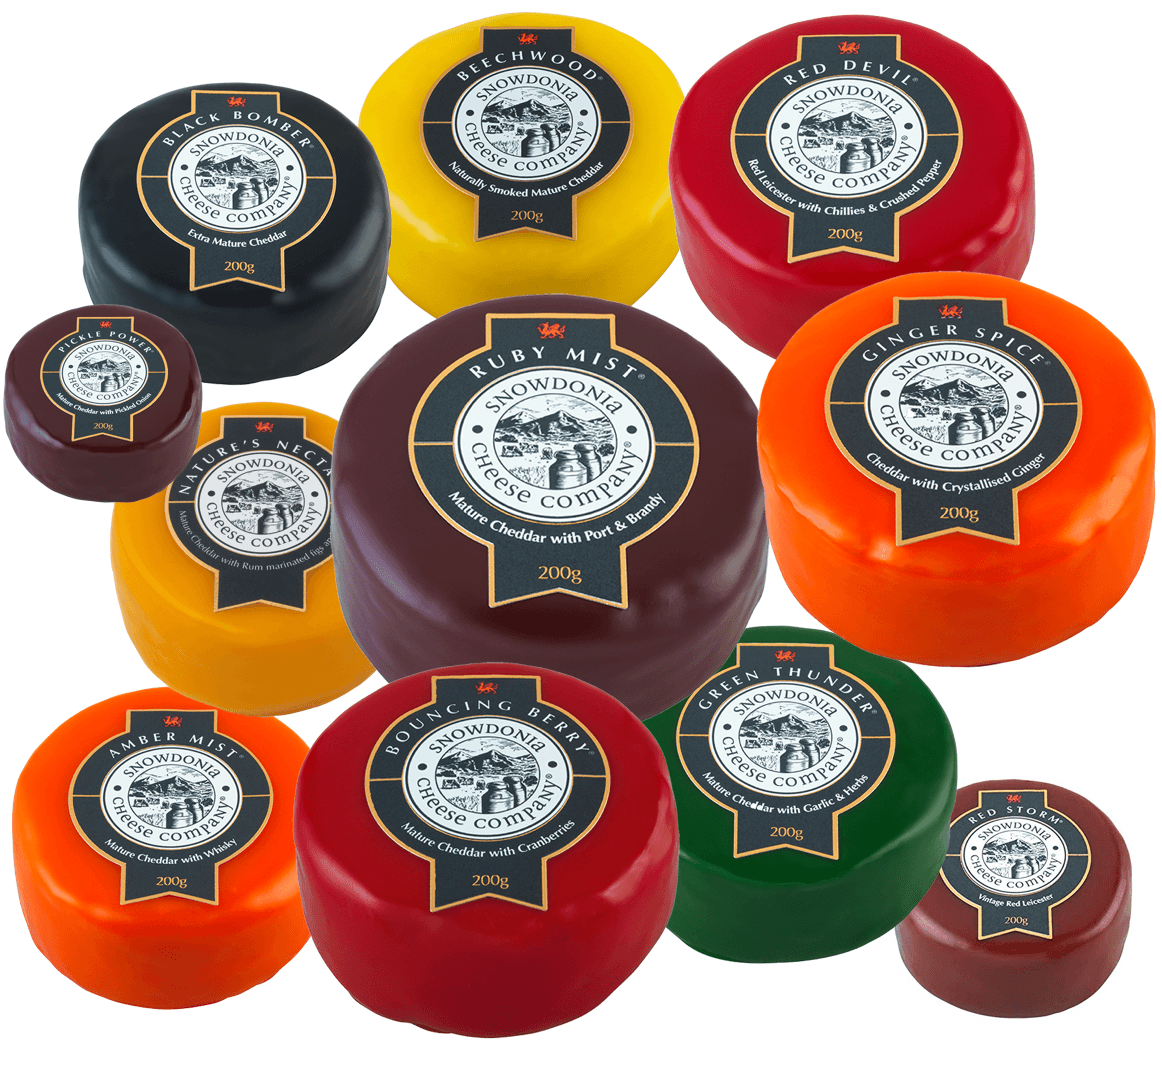 Snowdonia Pickle Power 200g - Celebration Cheeses